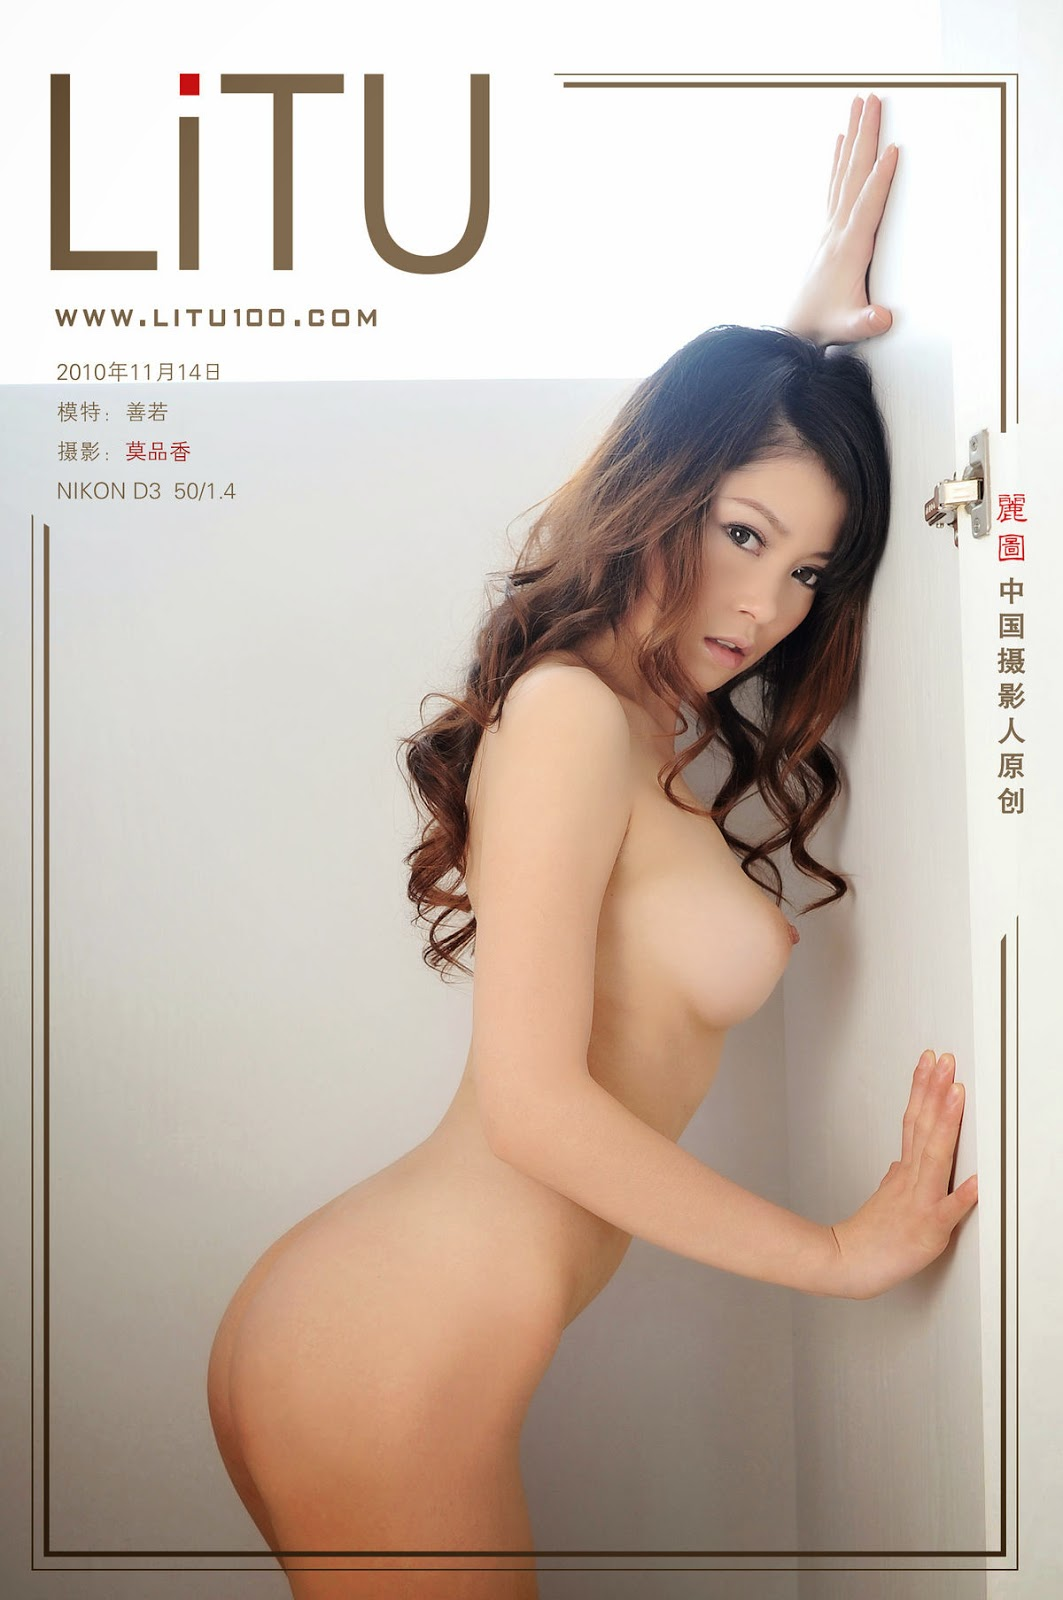 Chinese Nude Model Shan Ruo 03 [Litu100]  | 18+ gallery photos